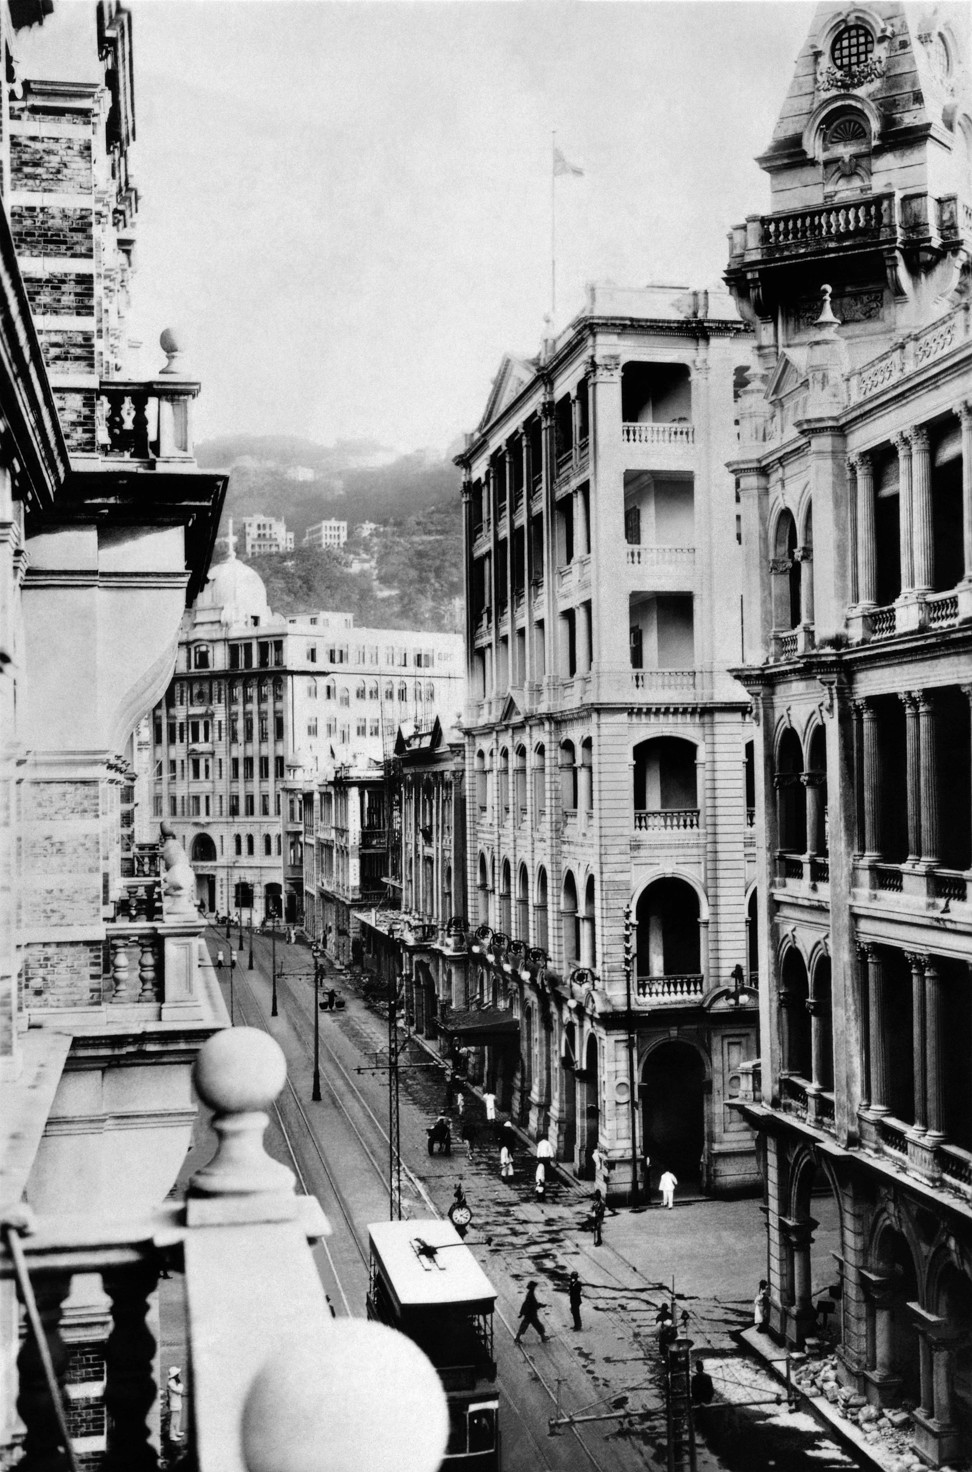 Home Of Hong Kong Heritage The Pink House On Peak Is Steeped Inside Flats Joyce Finials At Old Gpo Des Voeux Road Picture Formasia Books